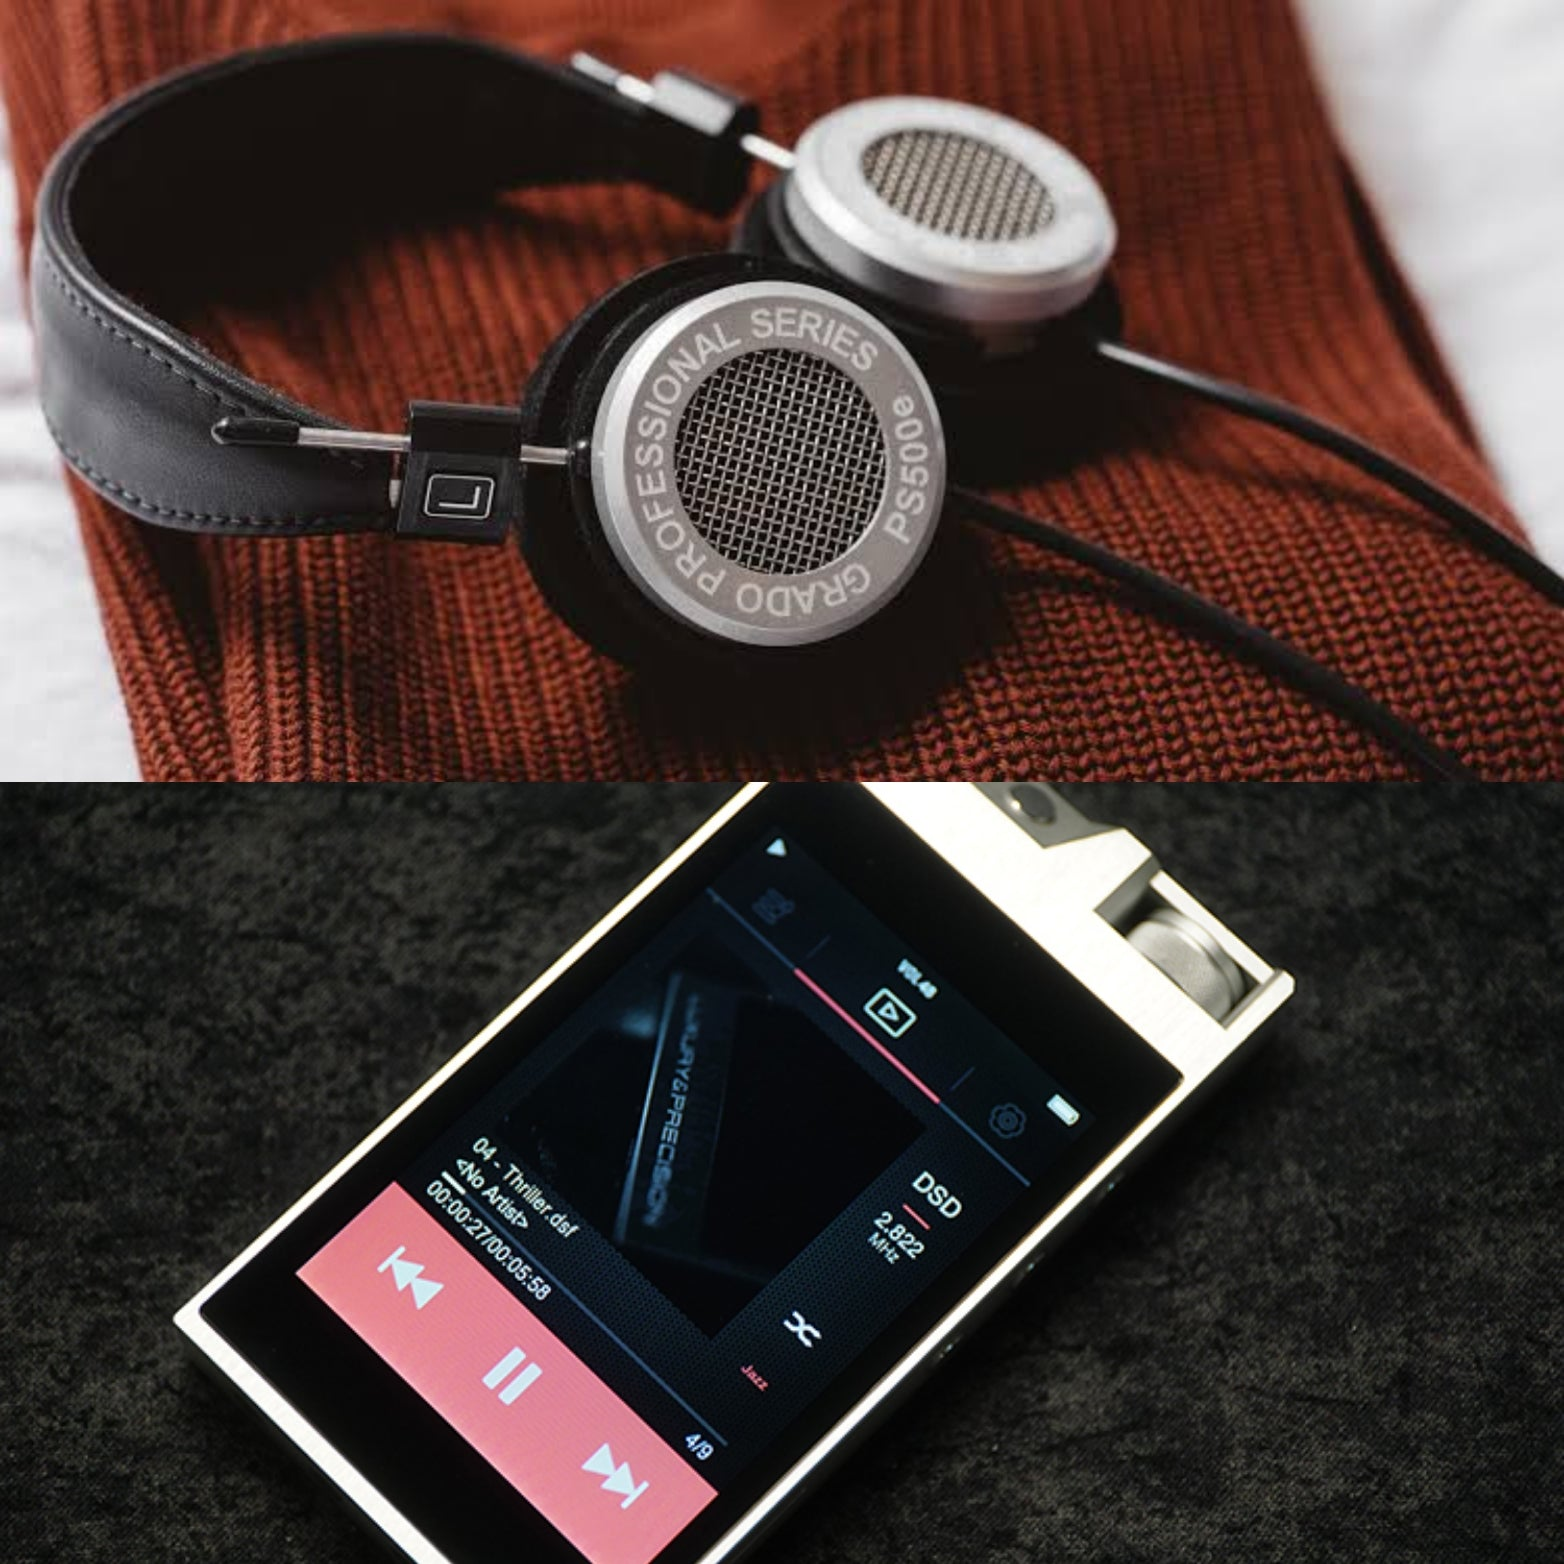 [COMBO] Grado PS500e Professional Series + Luxury & Precision L3 Digital Audio Player